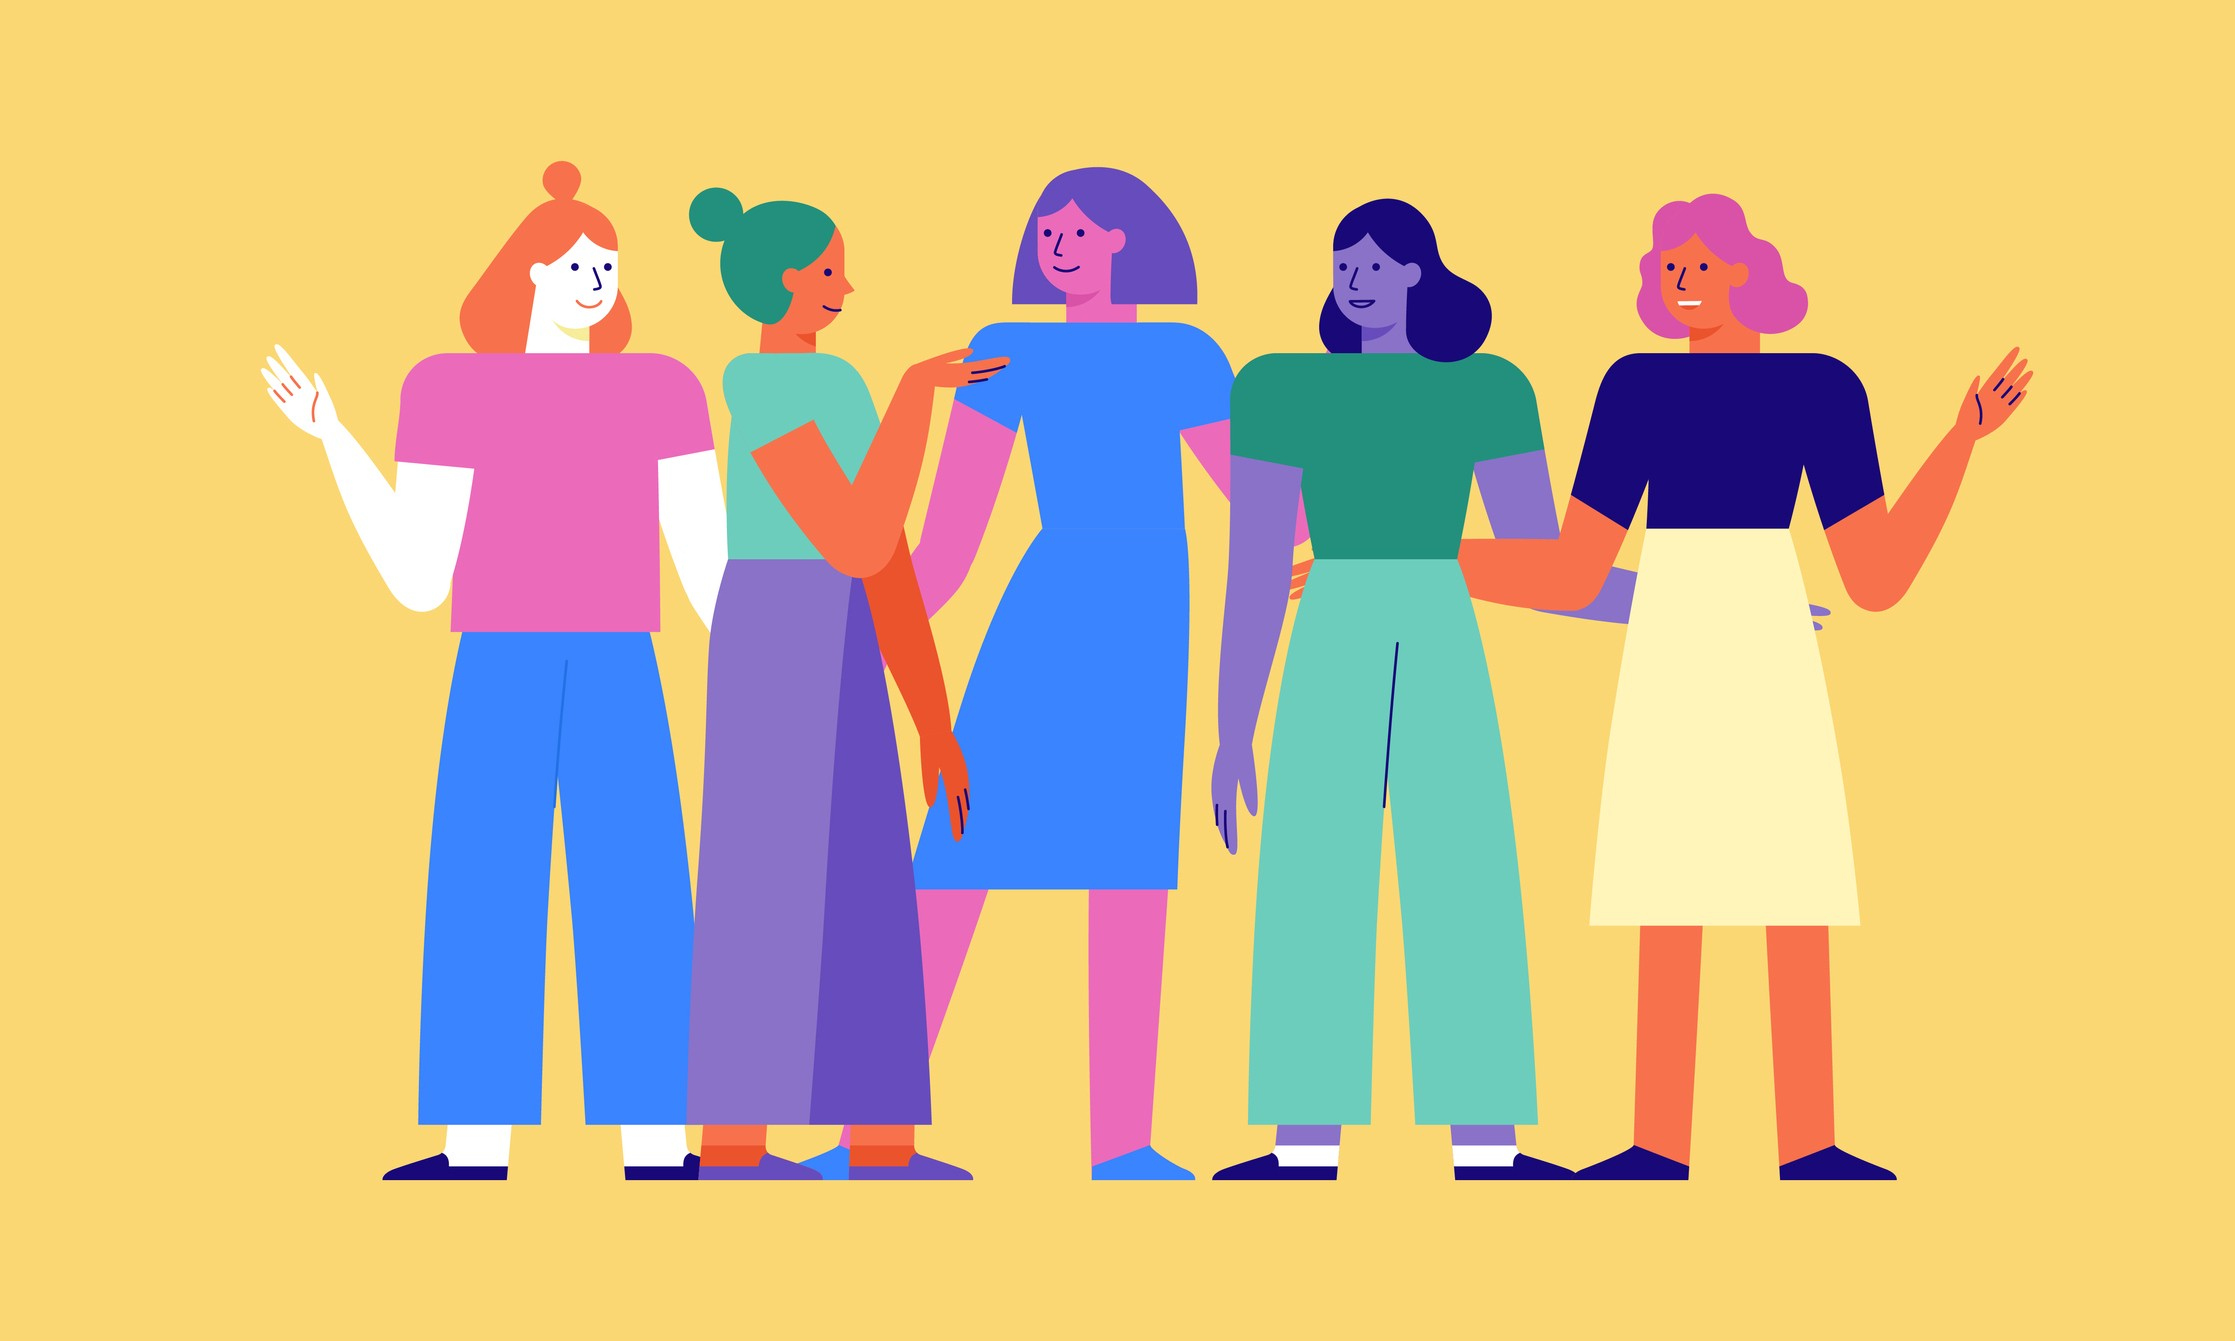 Illustration of several women standing together, colorful.